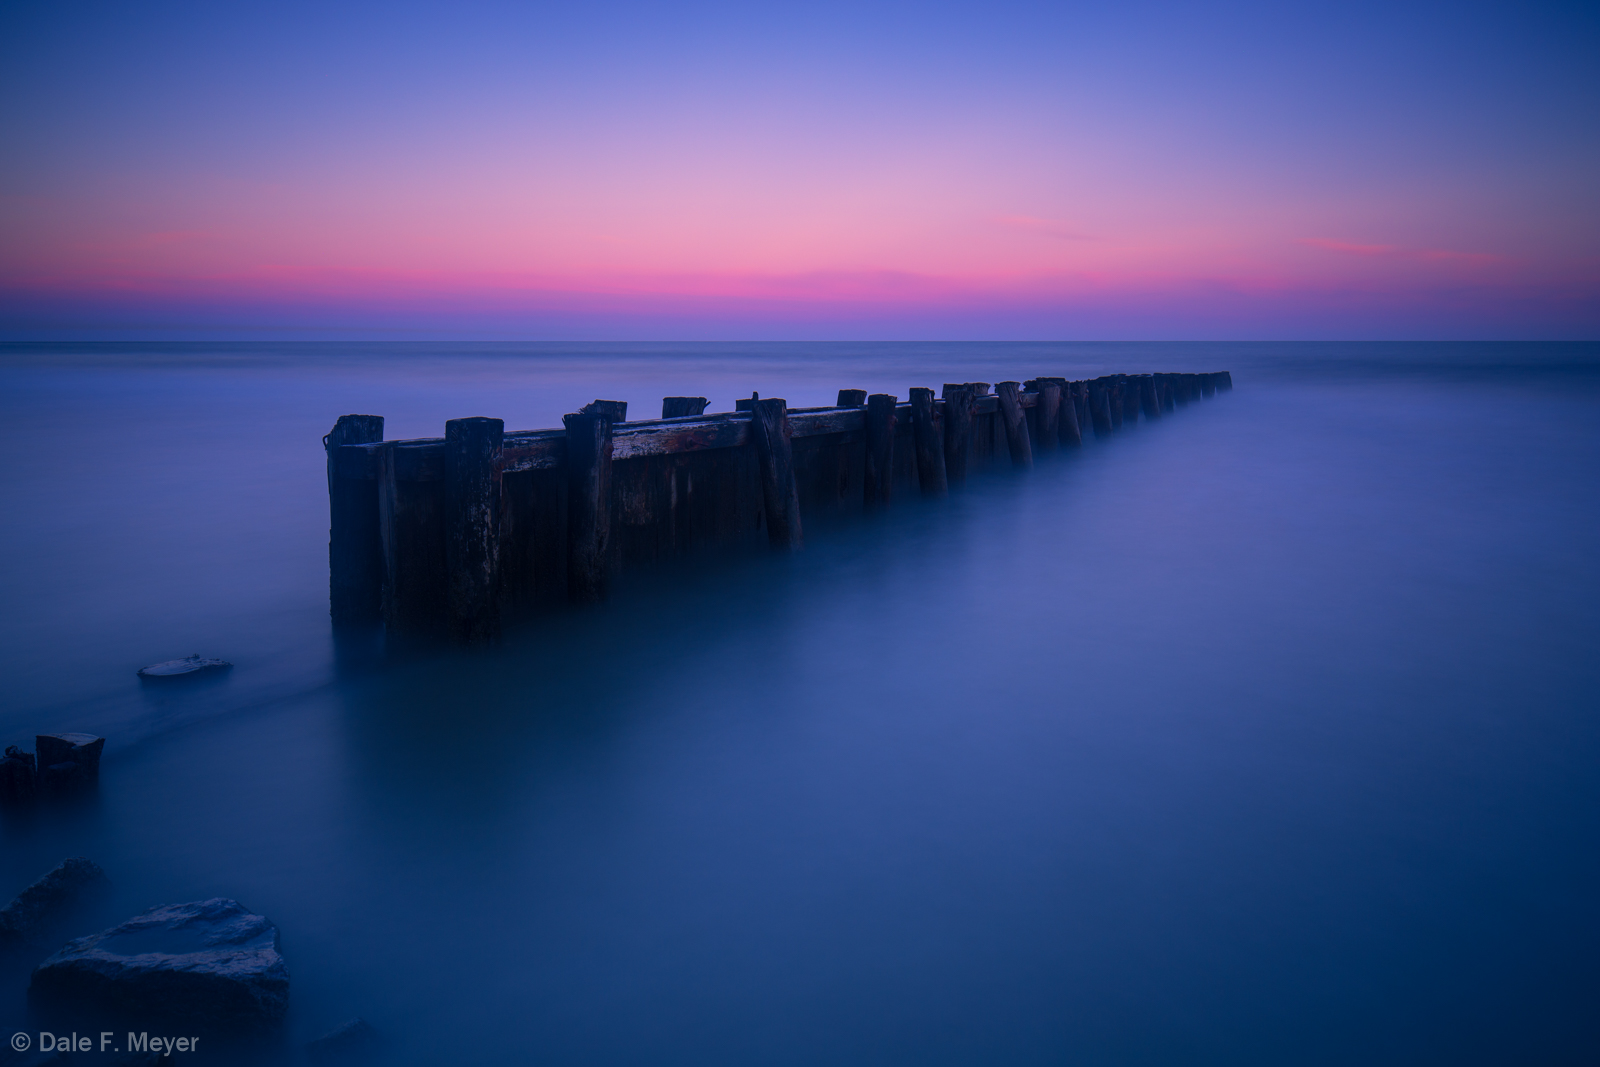 Costal,Pier,long exposure,sunset